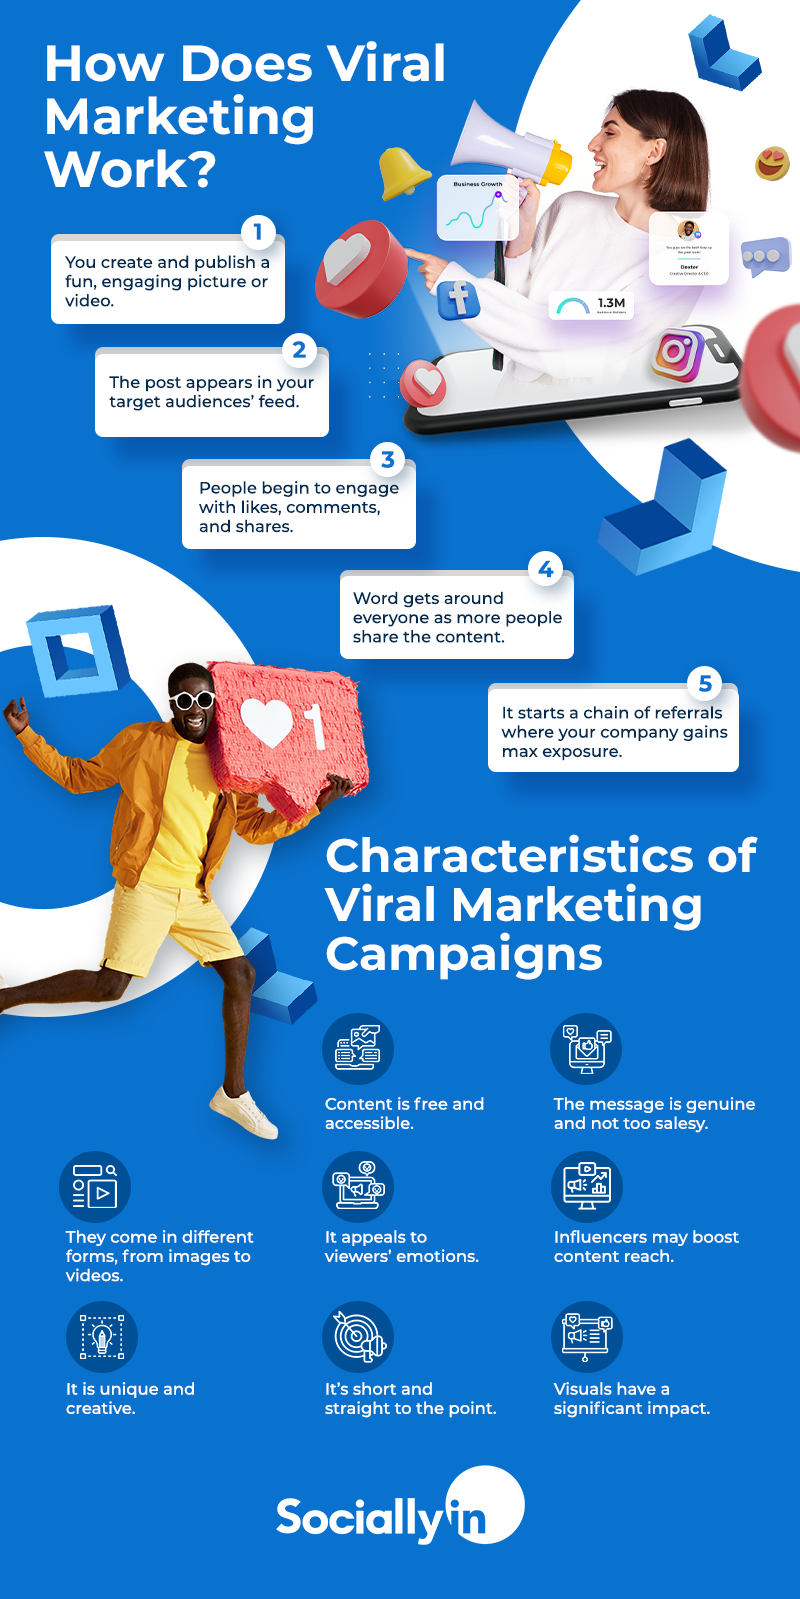 Viral Marketing Infographic describes how it works and characteristics of viral marketing campaigns